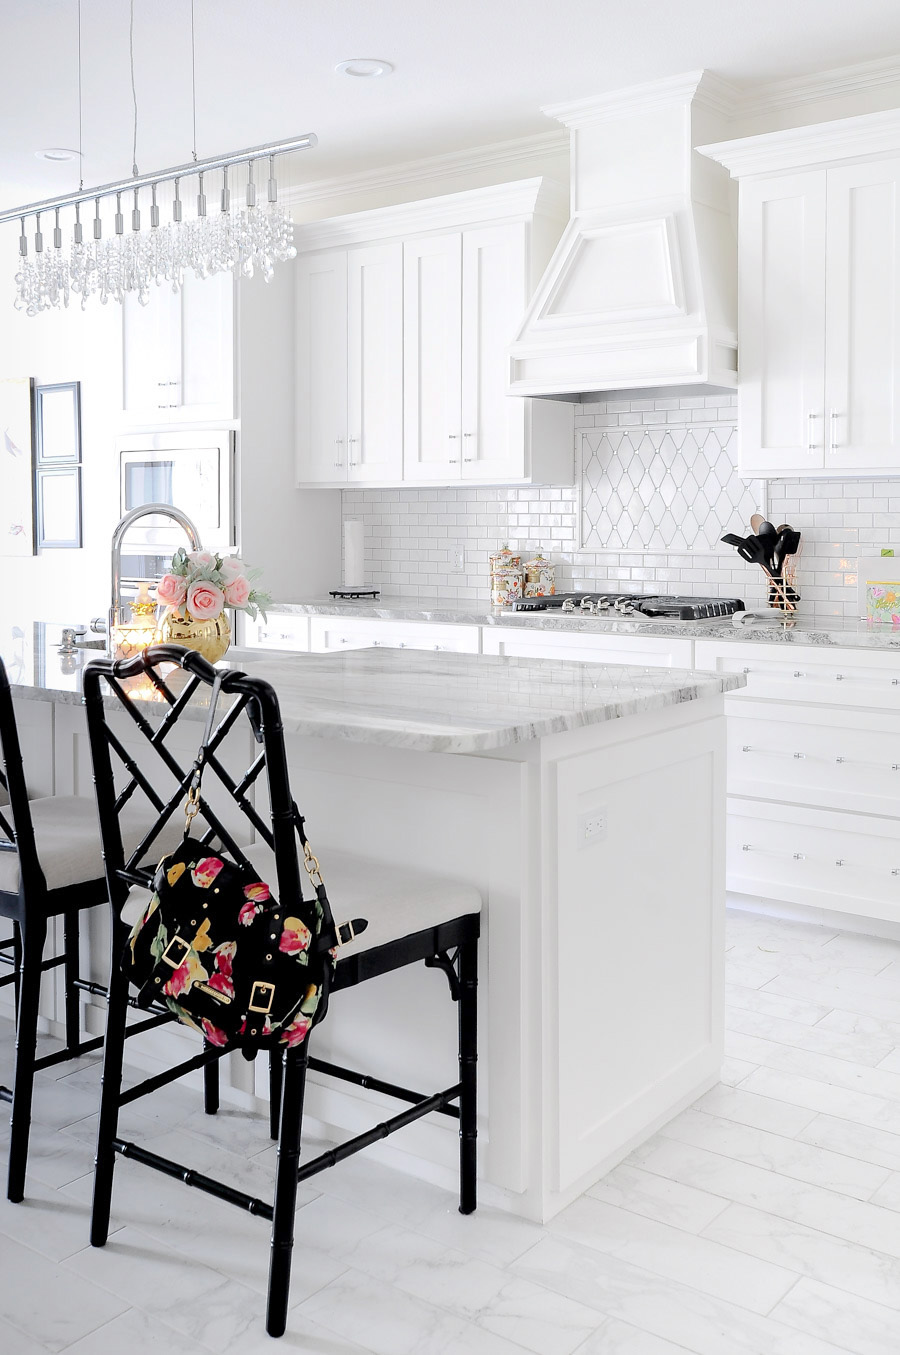 Bright white shaker cabinet kitchen with marble backsplash, gray countertops, and black bamboo counterstools.